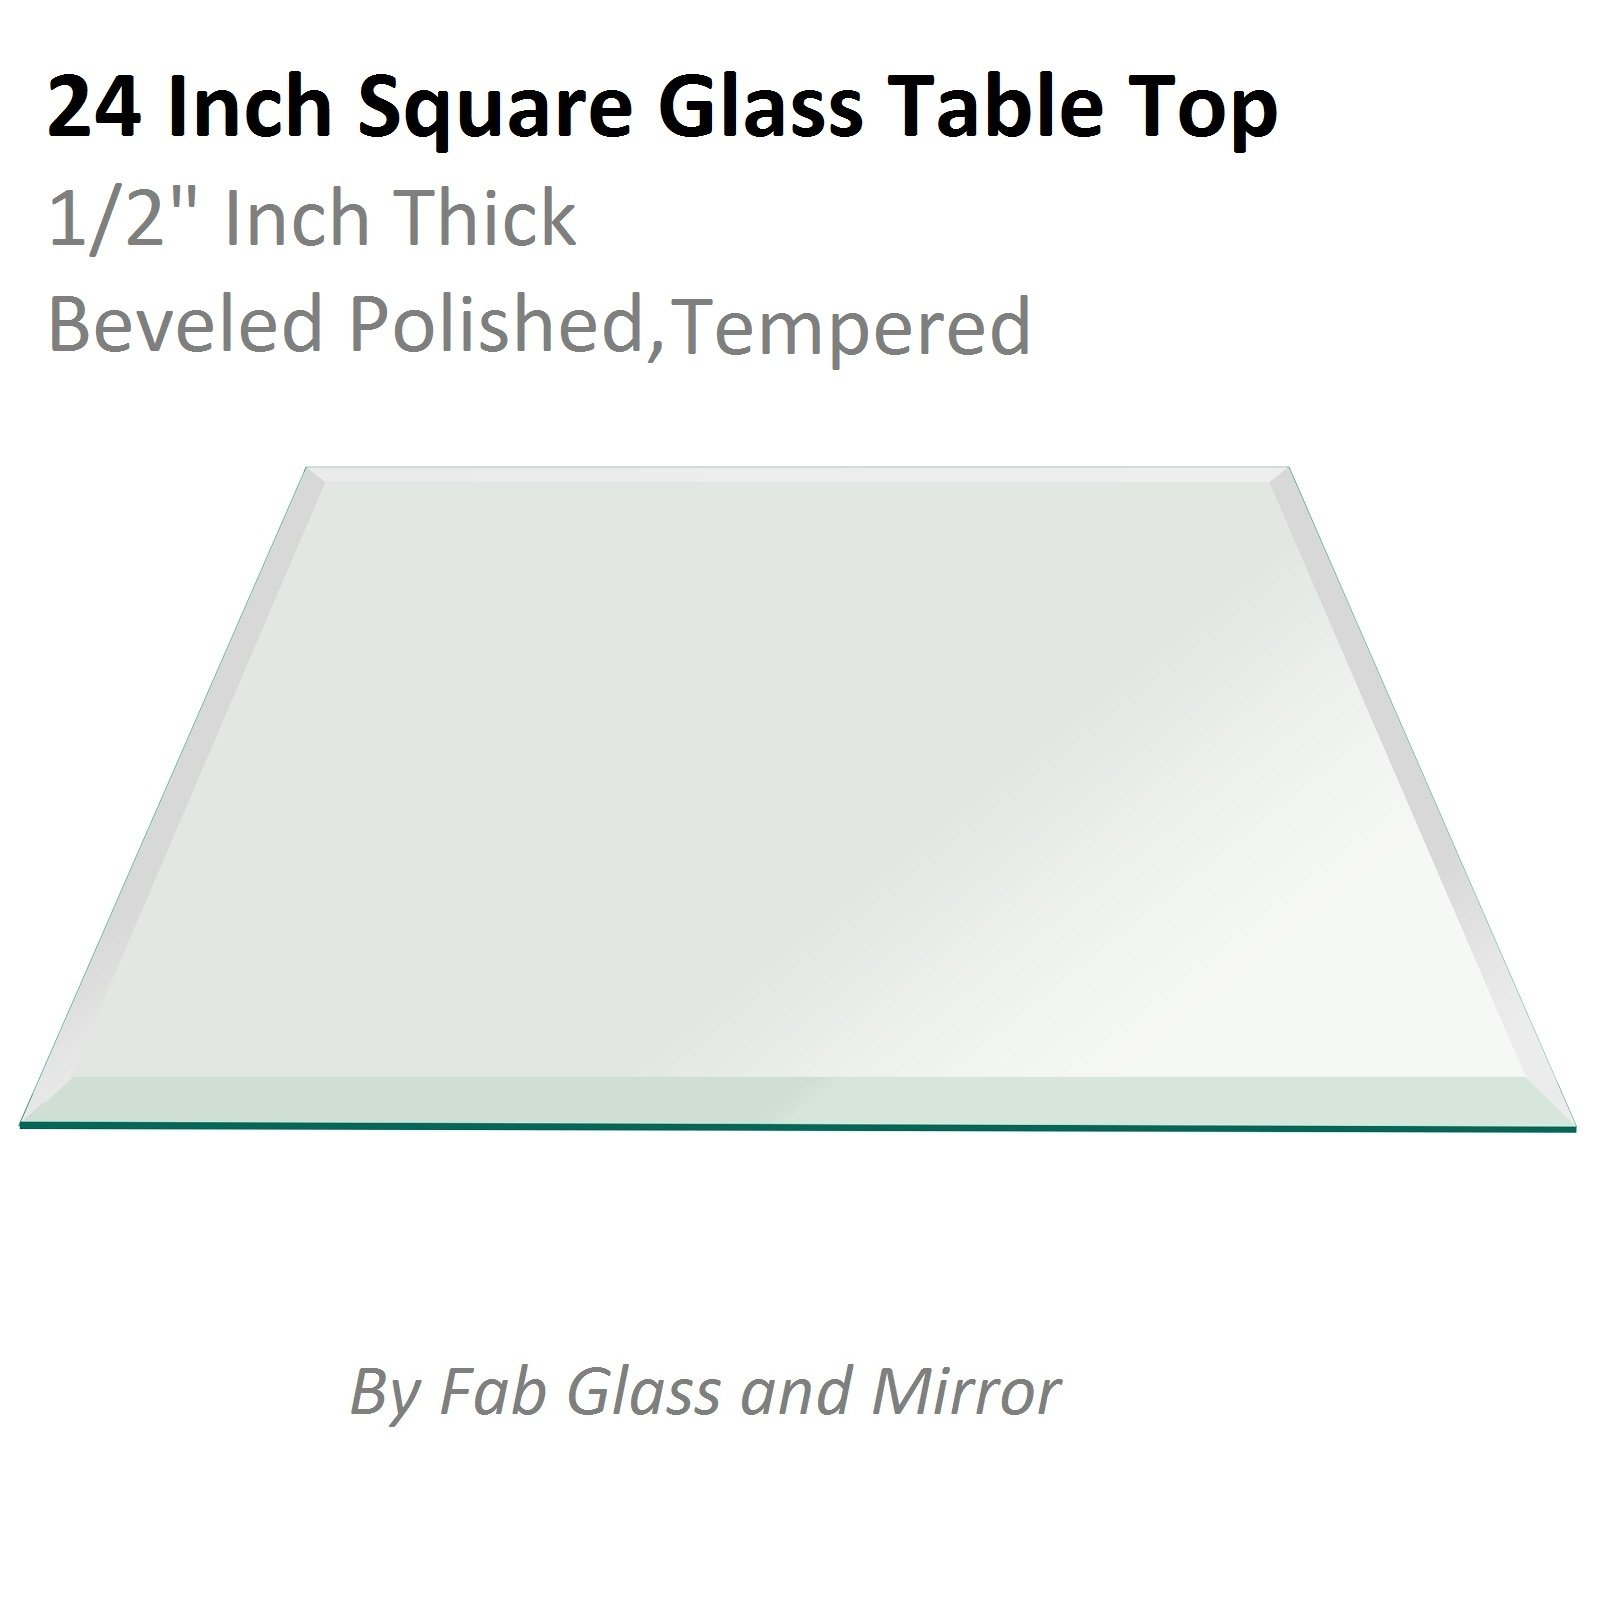 Fab Glass and Mirror Square Clear Glass Table Top 24'' Inch Tempered 1/2'' Thick Bevel Polish Radius Corners